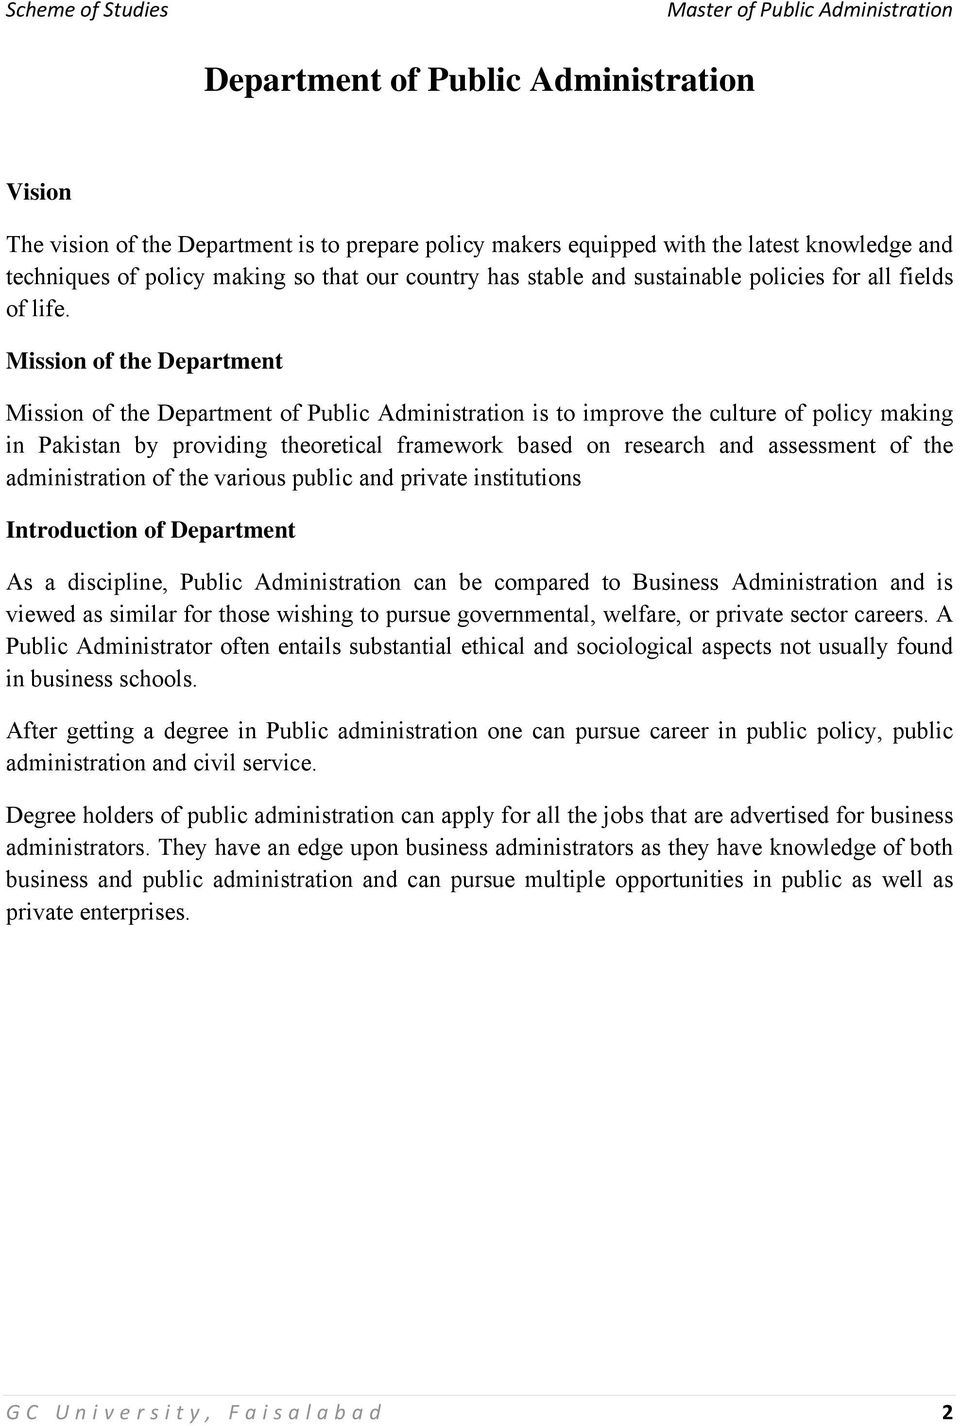 Mission of the Department Mission of the Department of Public Administration is to improve the culture of policy making in Pakistan by providing theoretical framework based on research and assessment